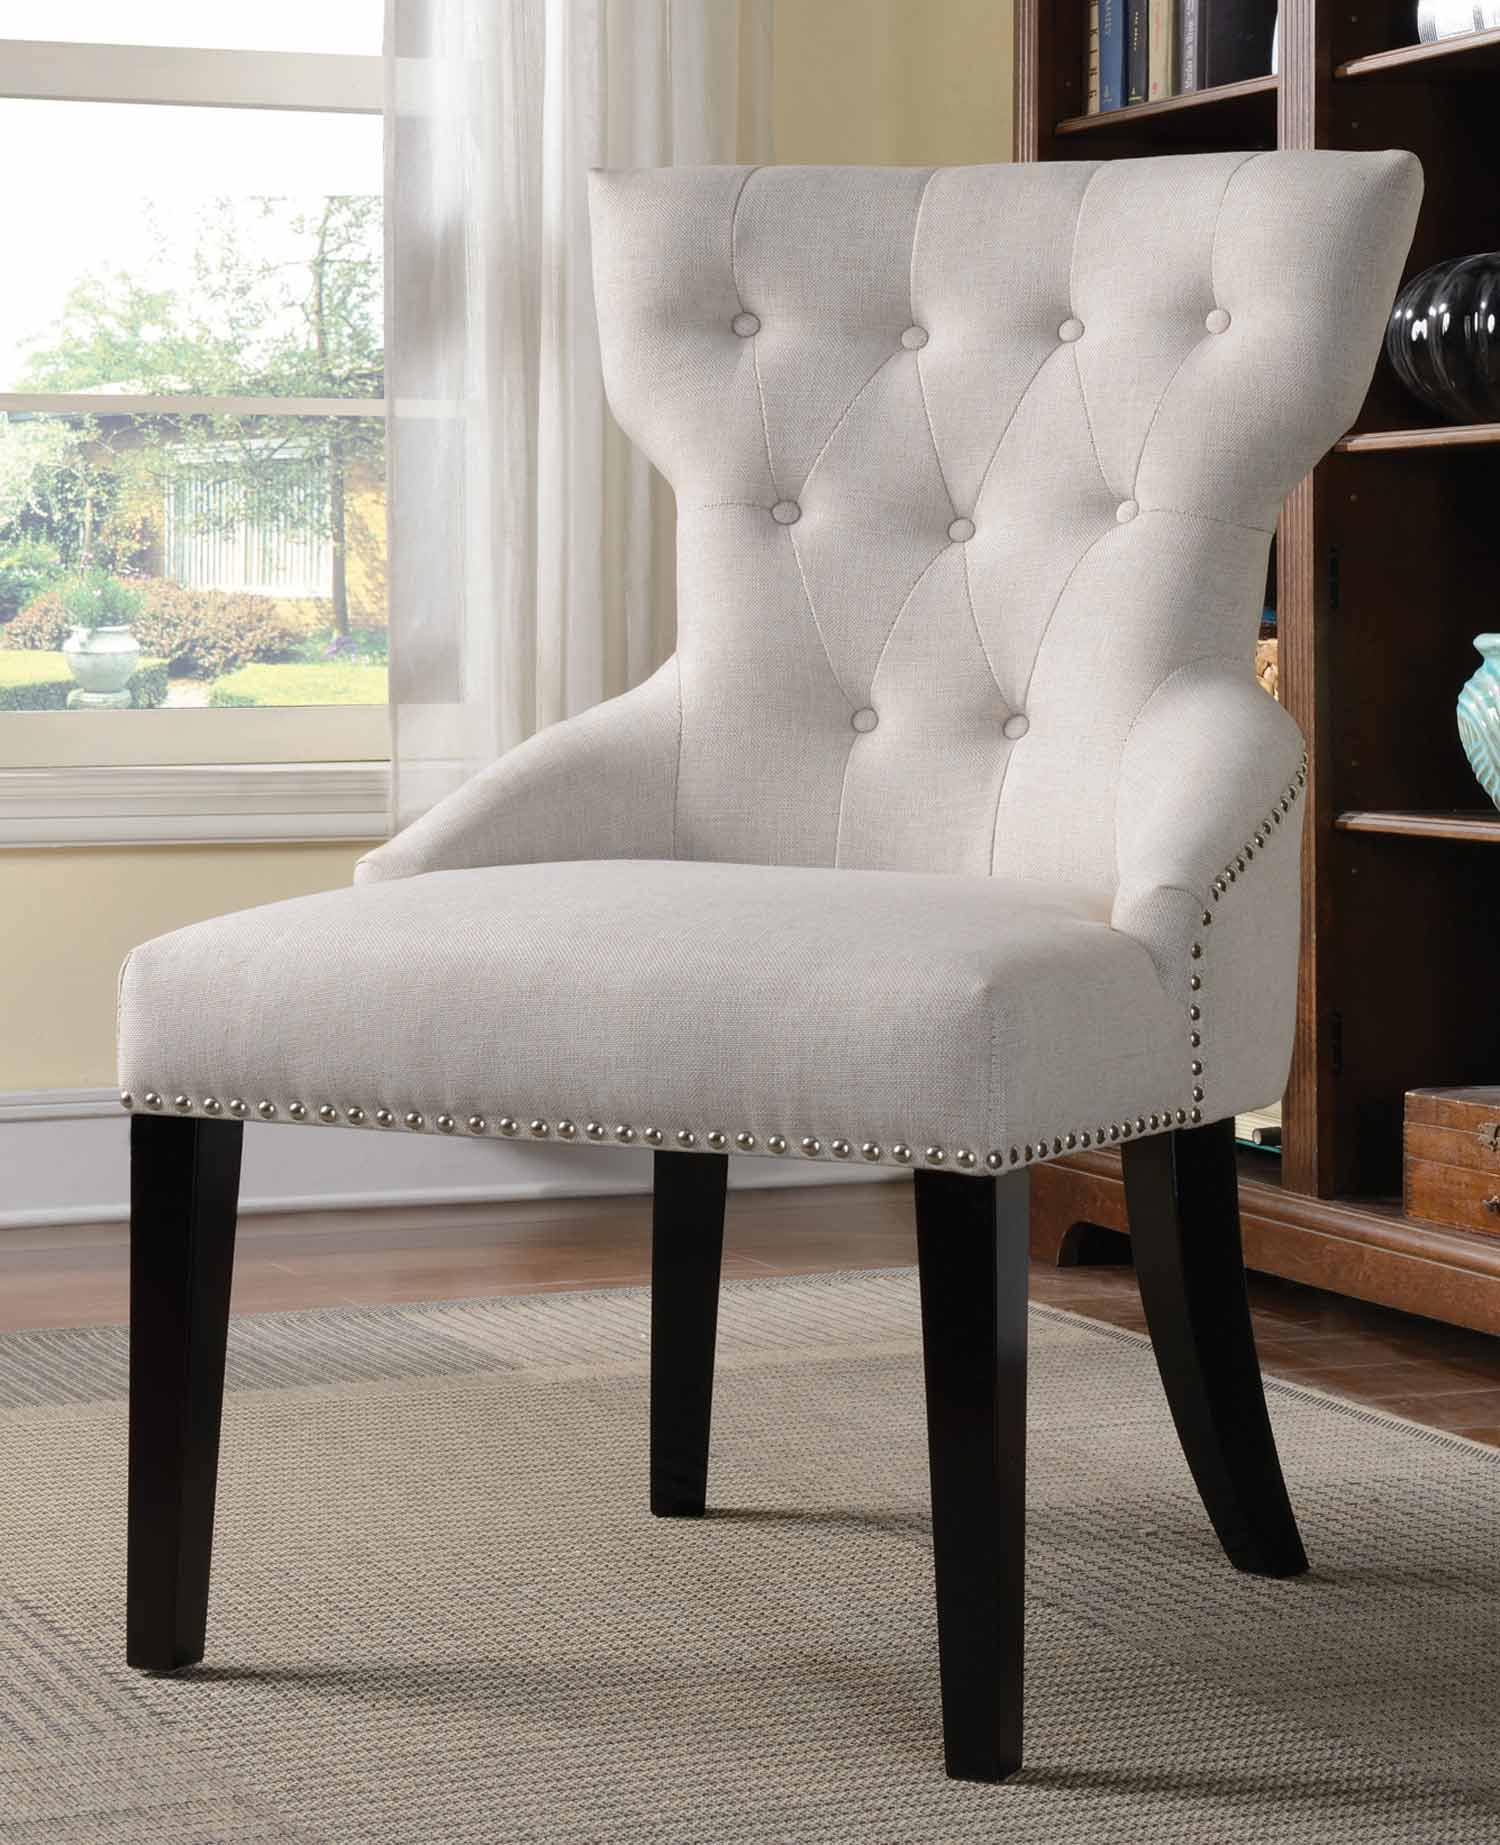 902238 Accent Chair - White